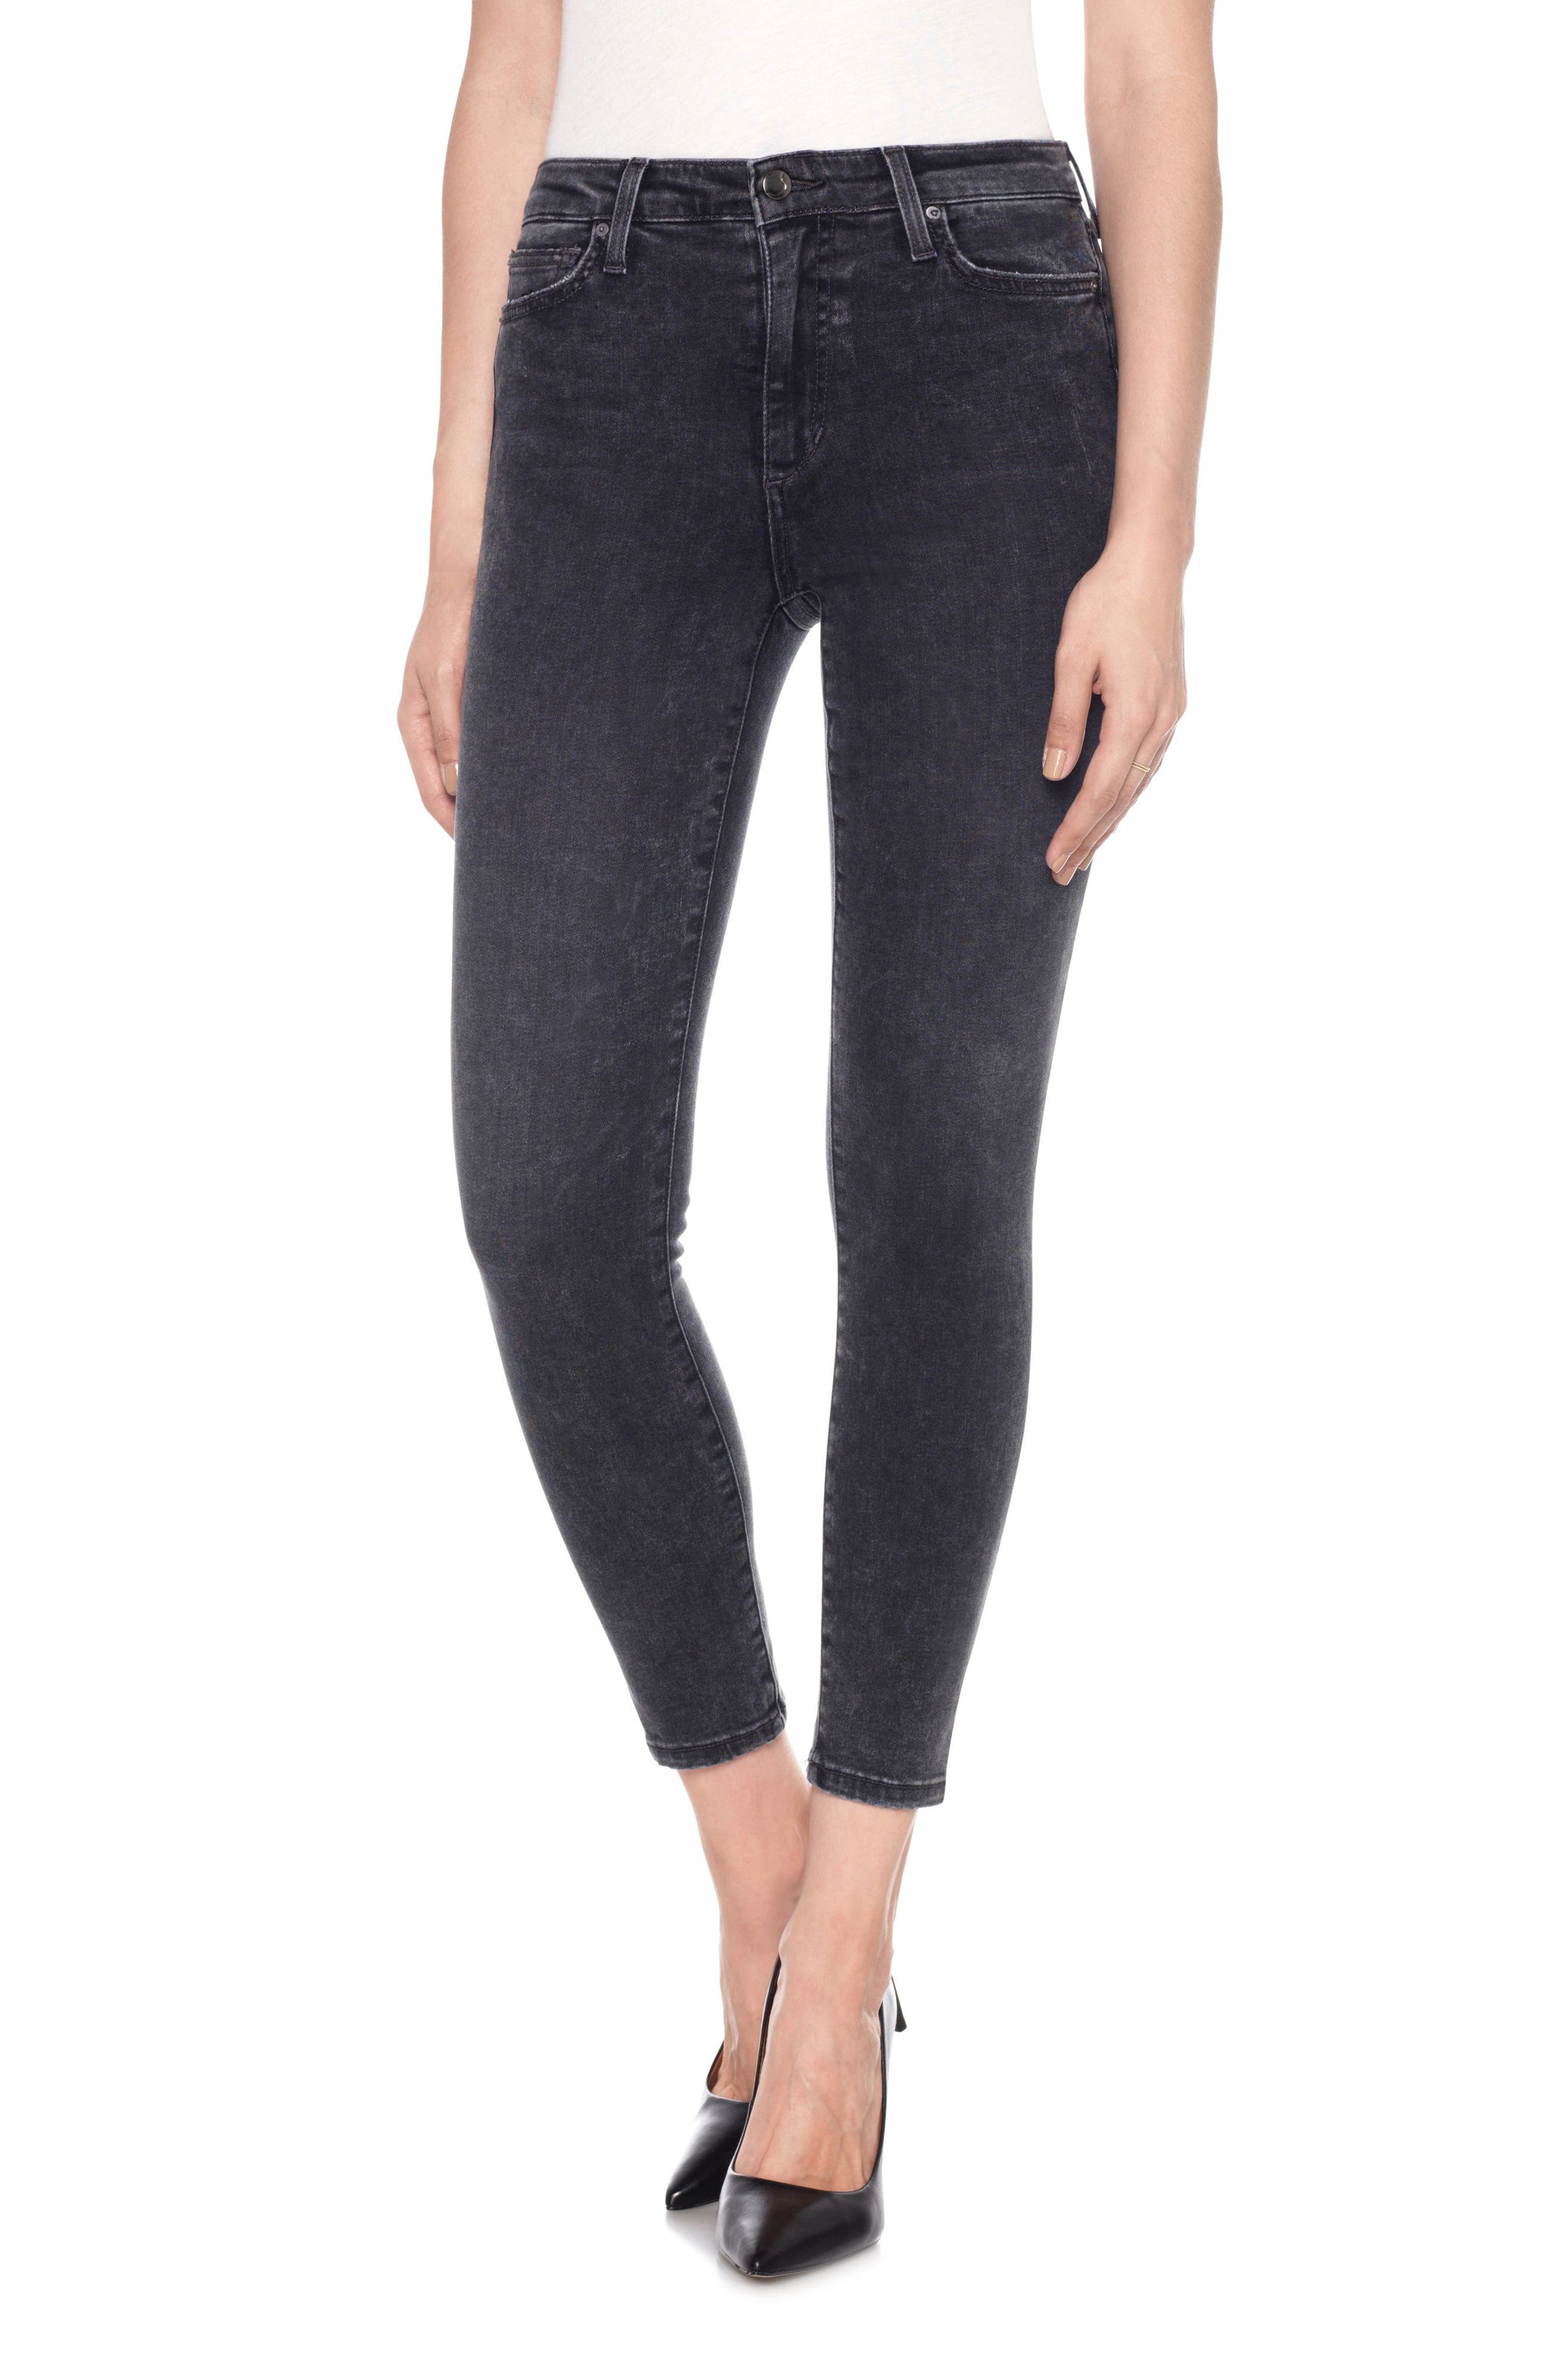 Charlie High Waist Ankle Skinny Jeans,                             Main thumbnail 1, color,                             018